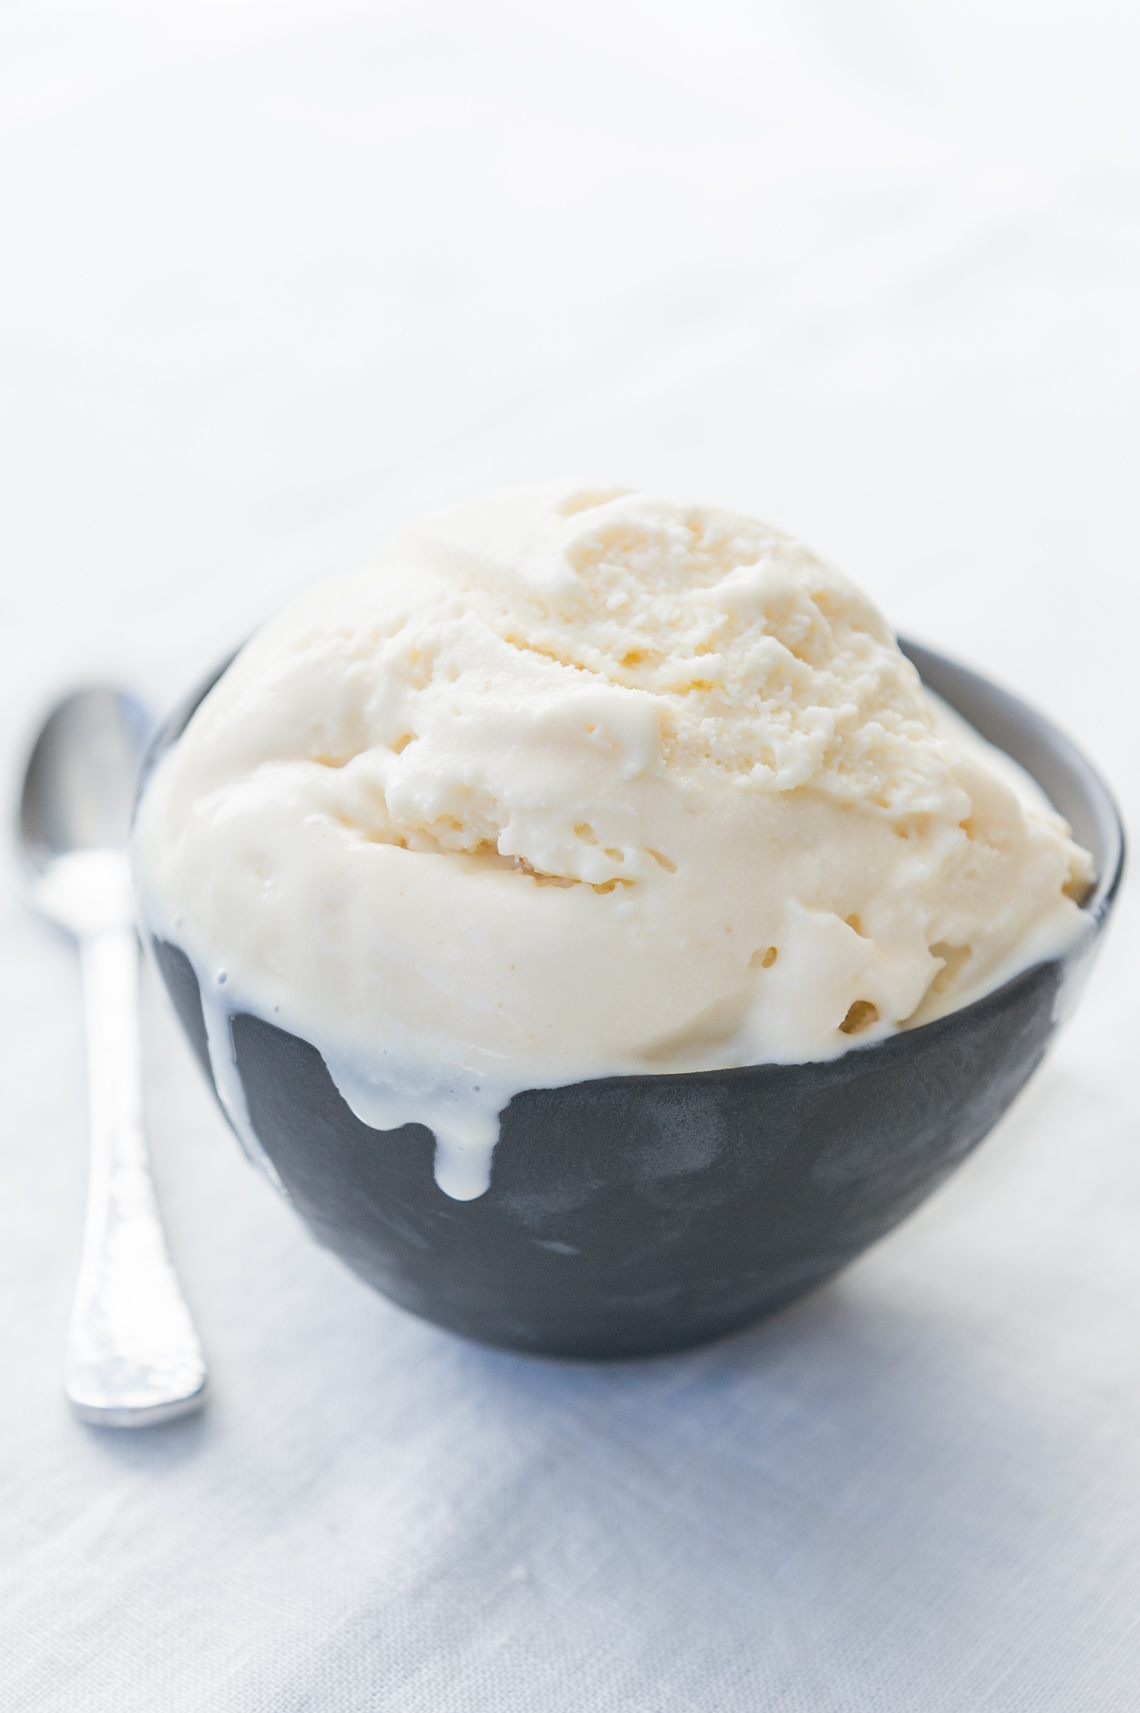 NYC Food Photographer - Vanilla Ice Cream Bowl